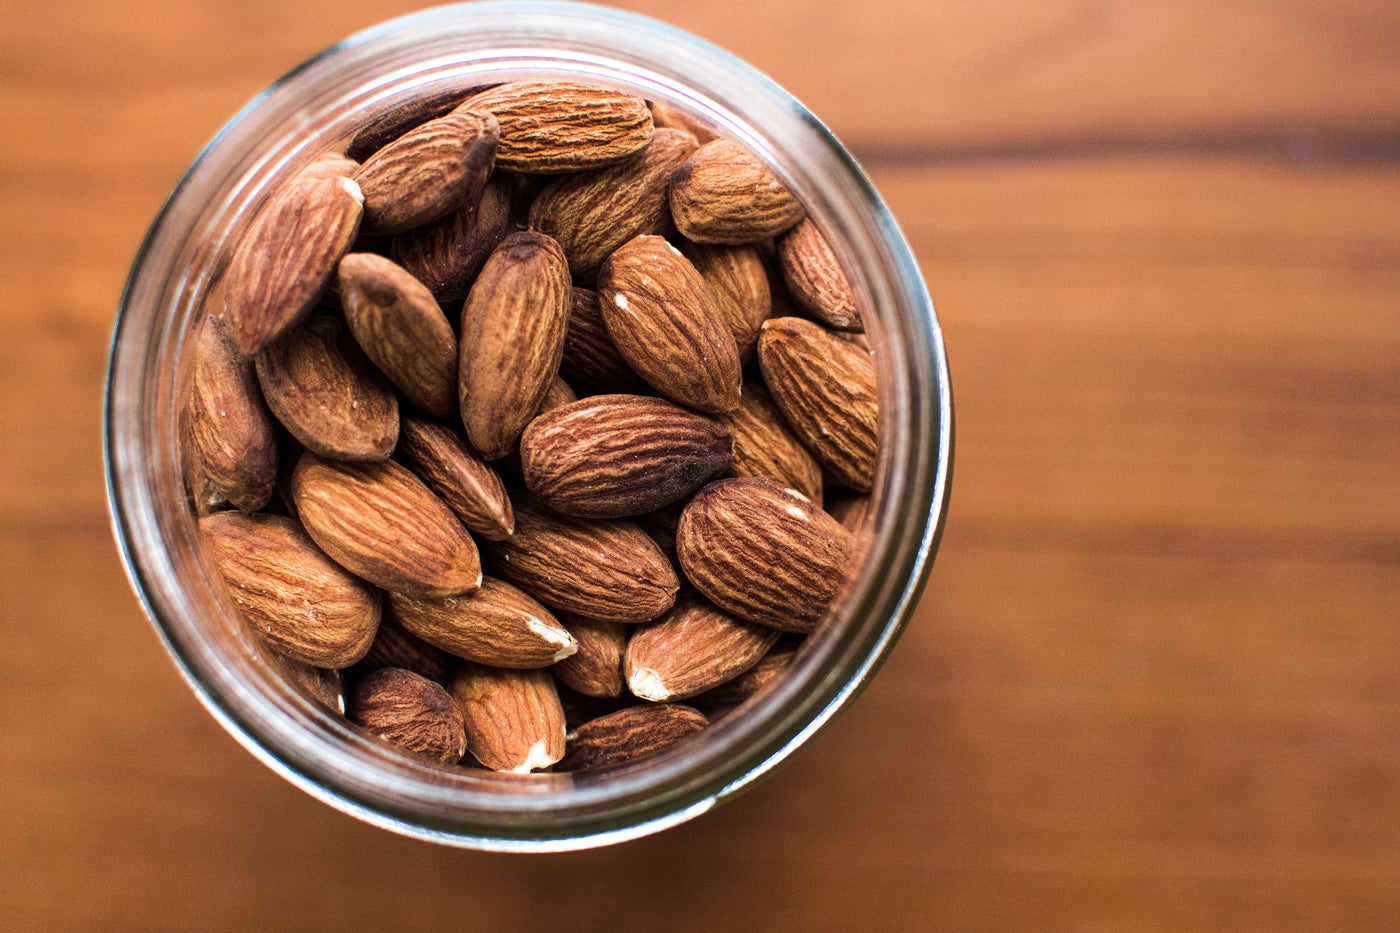 Wholesale Almonds in a bowl